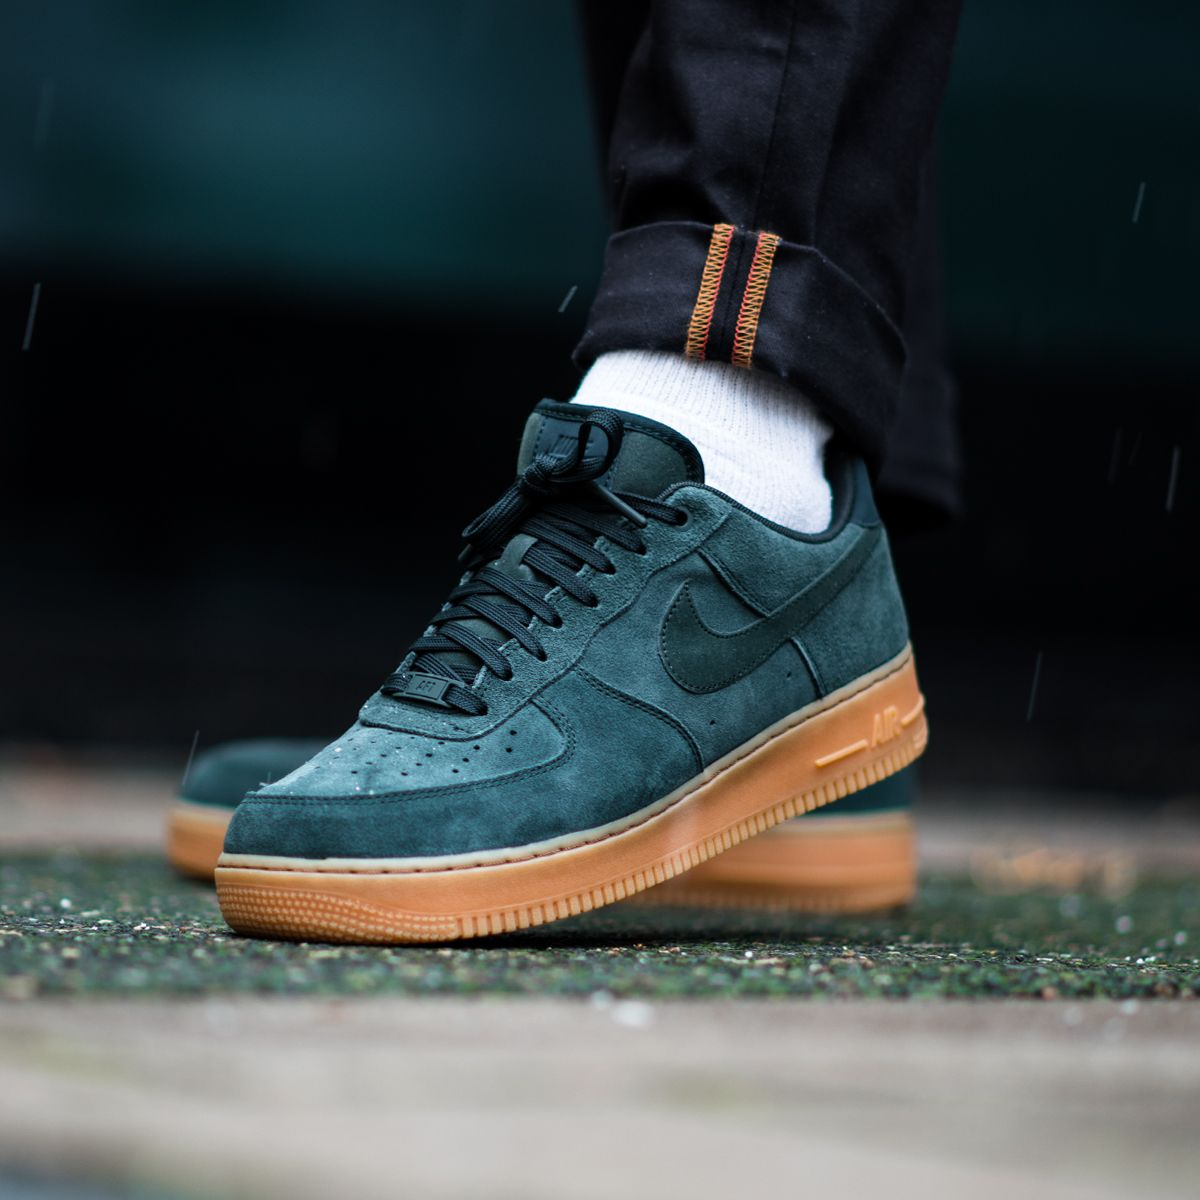 new product 9b2b7 0c36a Dark green suede AF1s with gum sole! This Nike Air Force 1 Low is available  now on KICKZ.com and in selected stores!